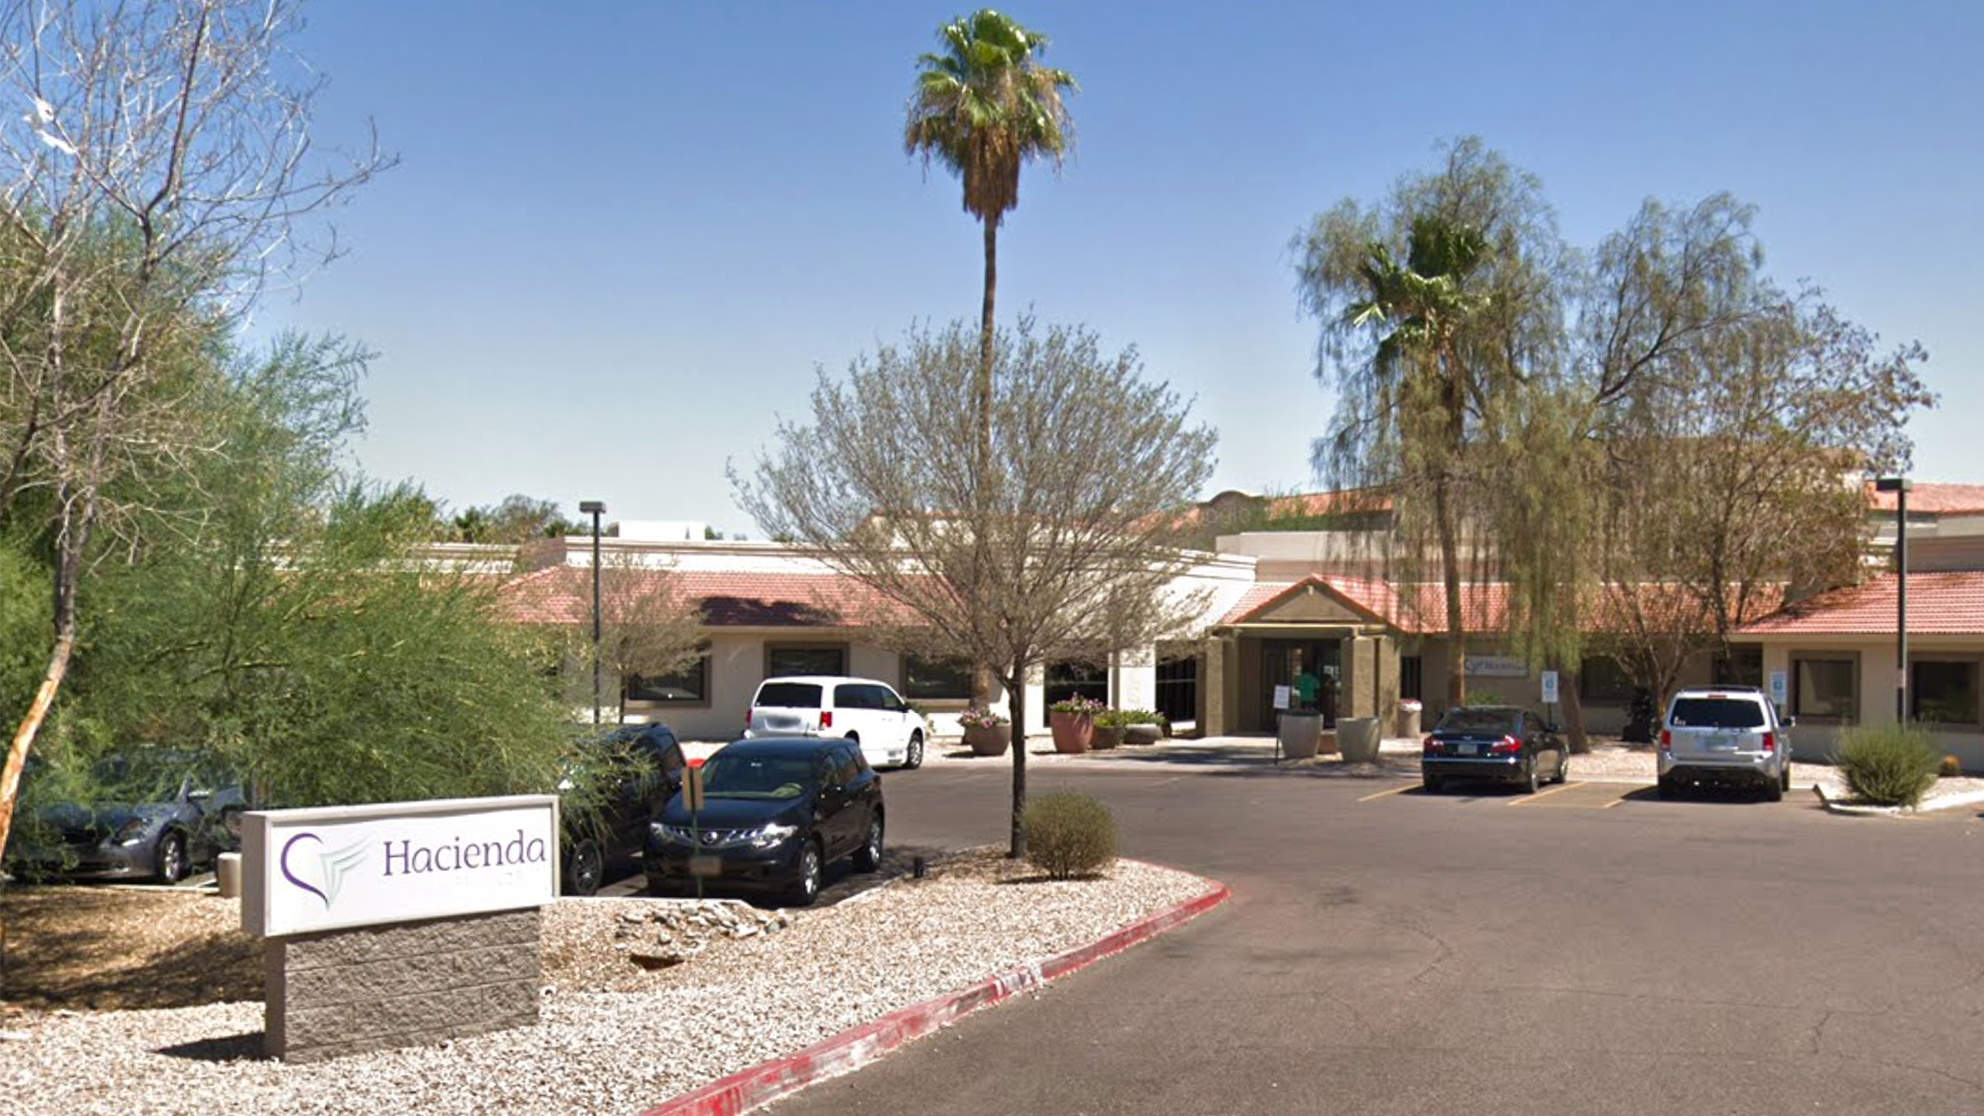 After Woman in Long-Term Vegetative State at Ariz. Nursing Facility Gives Birth, CEO Resigns